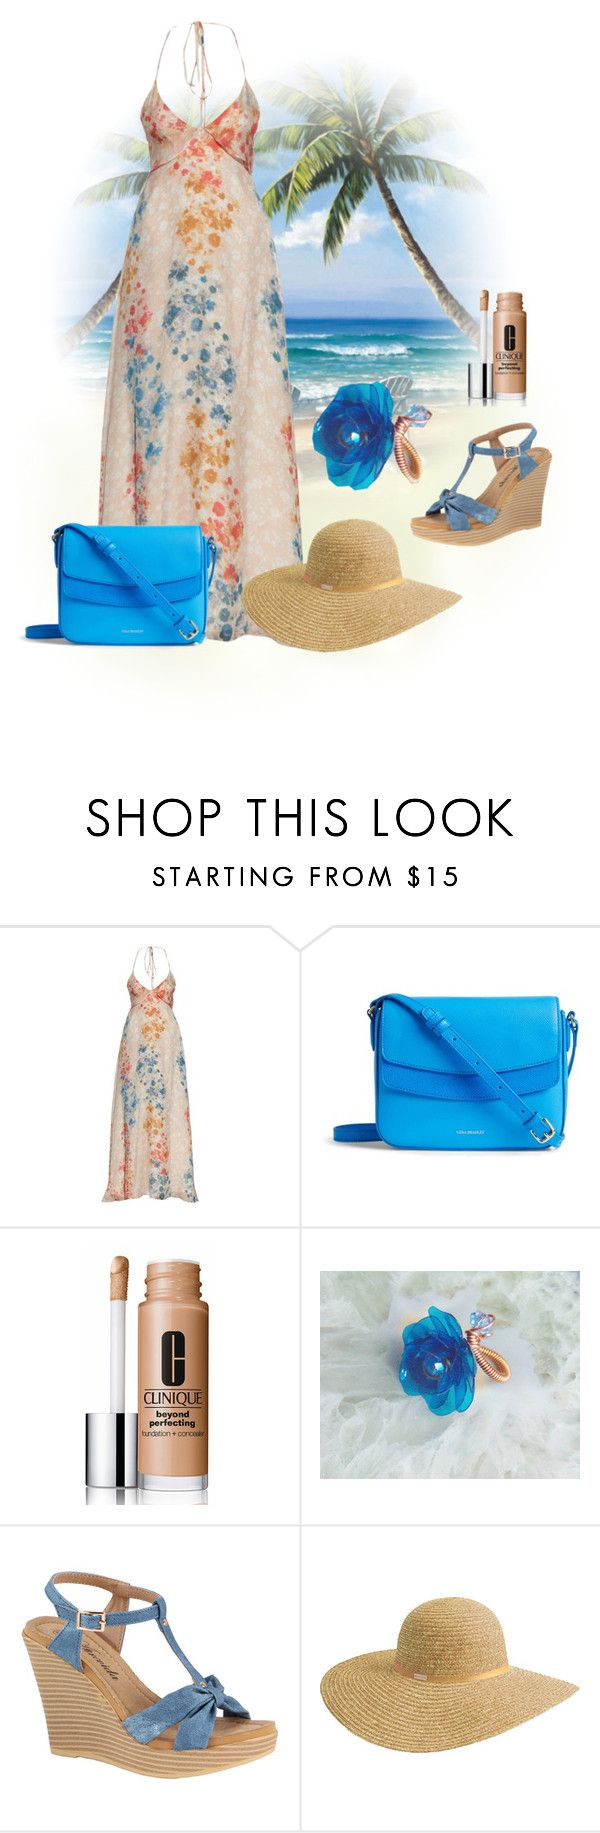 """Summer"" by styledonna on Polyvore featuring moda, Athena Procopiou, Vera Bradley, Clinique i Betmar"